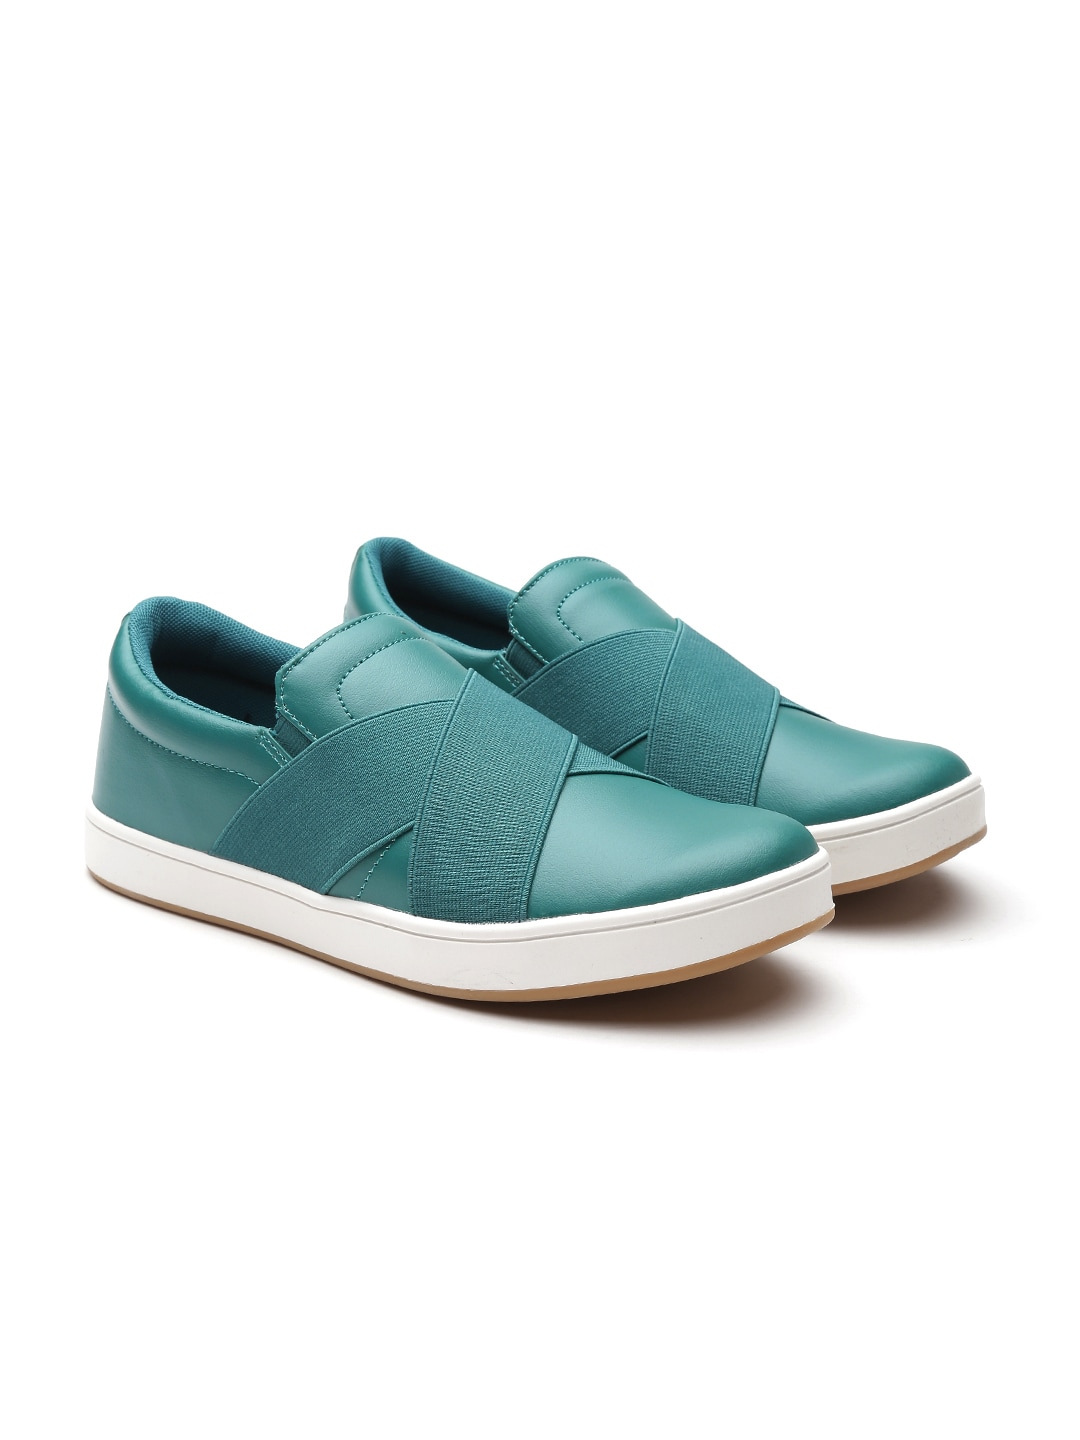 d341e6e648be Green Shoes - Buy Green Shoes Online in India